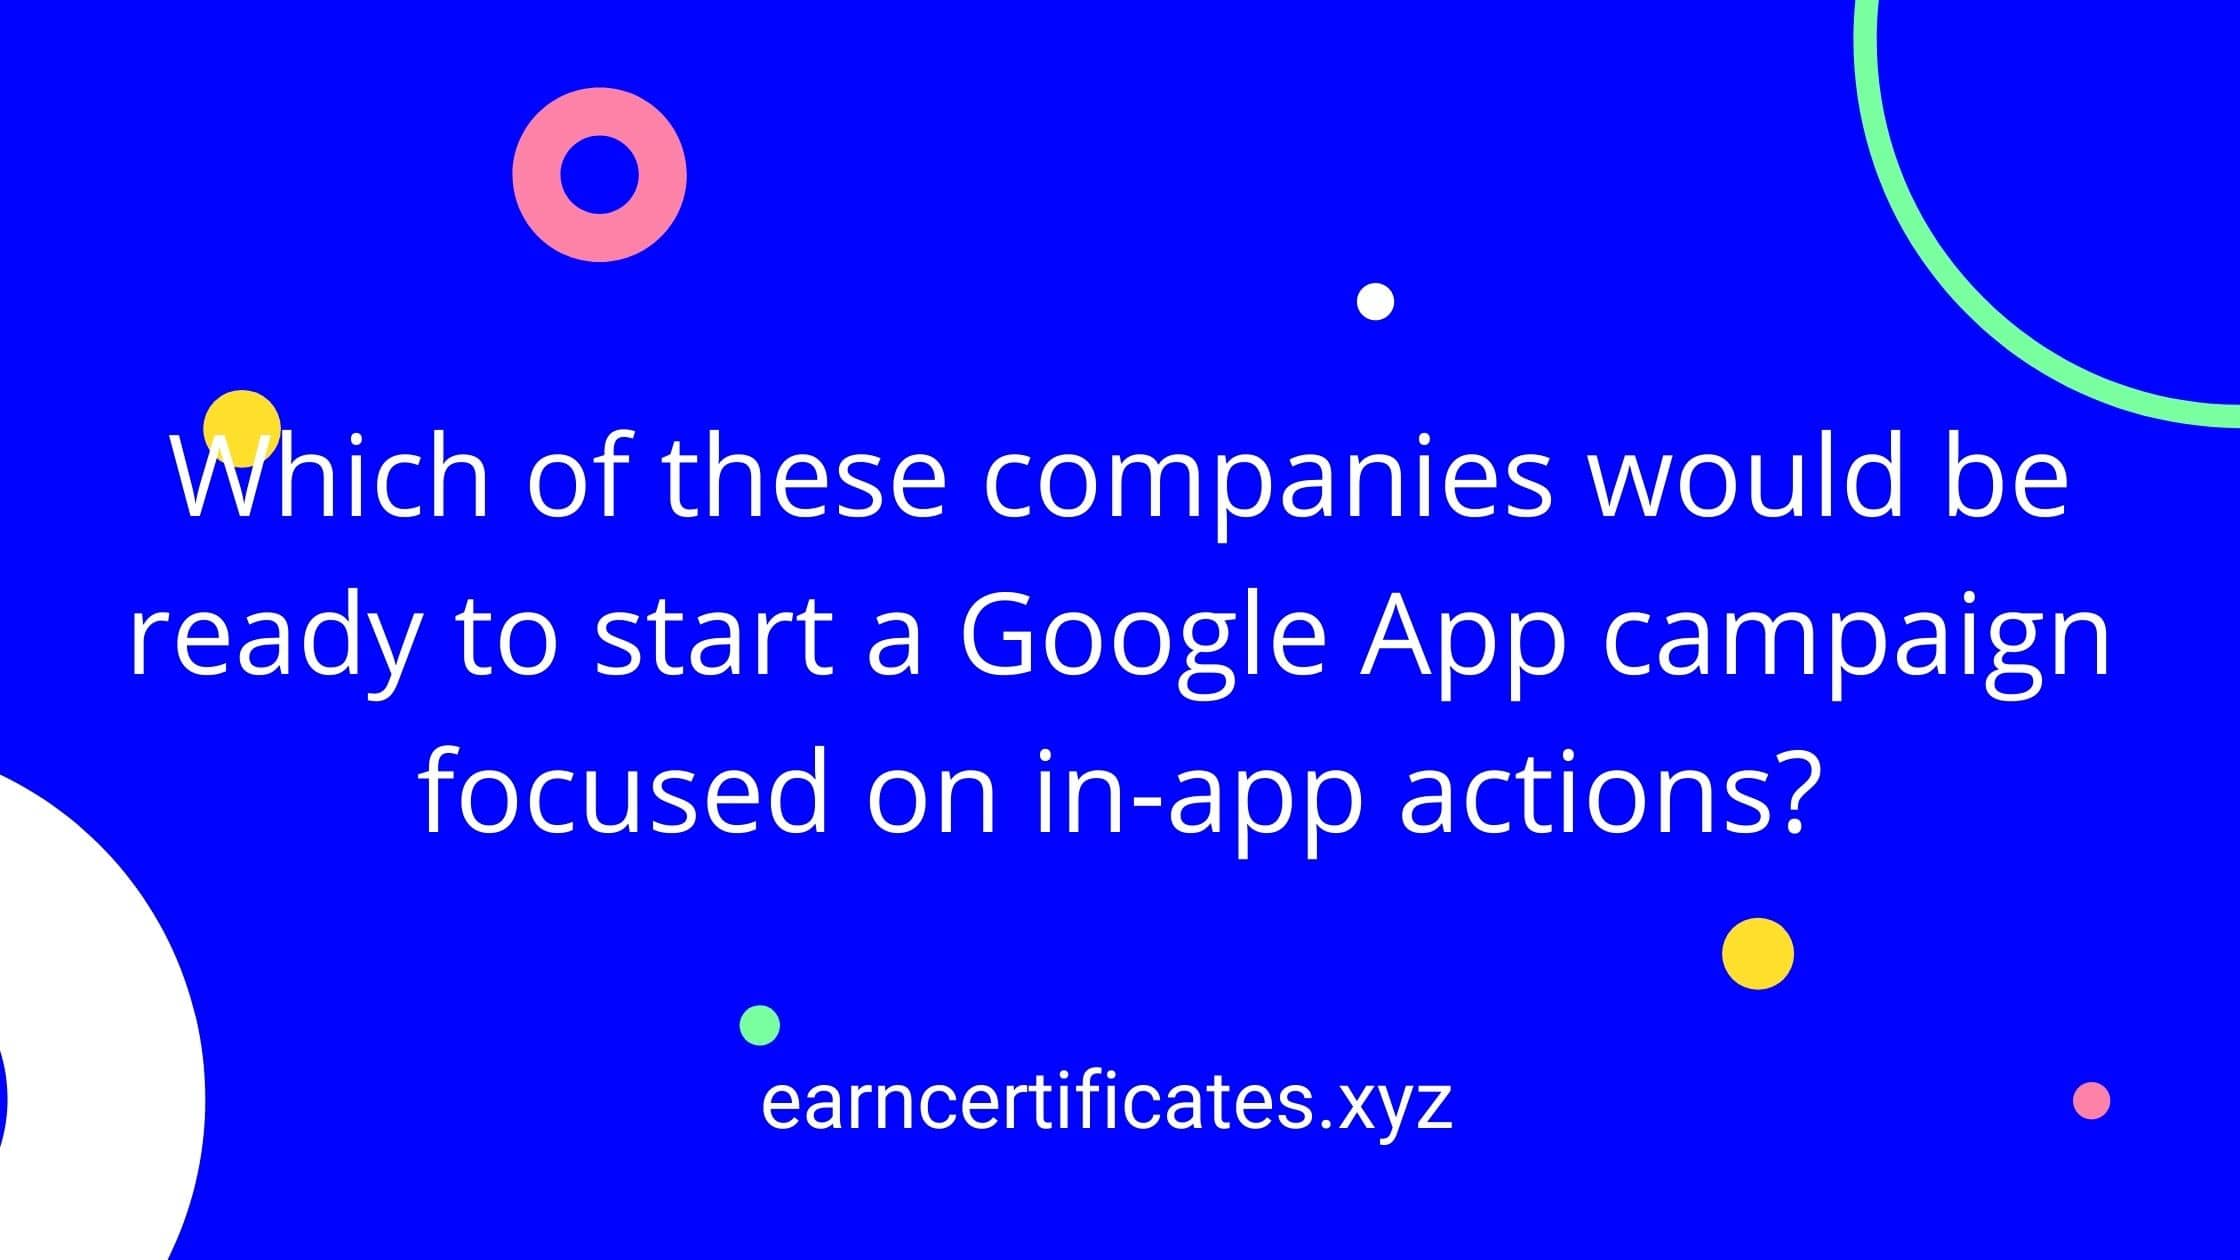 Which of these companies would be ready to start a Google App campaign focused on in-app actions?